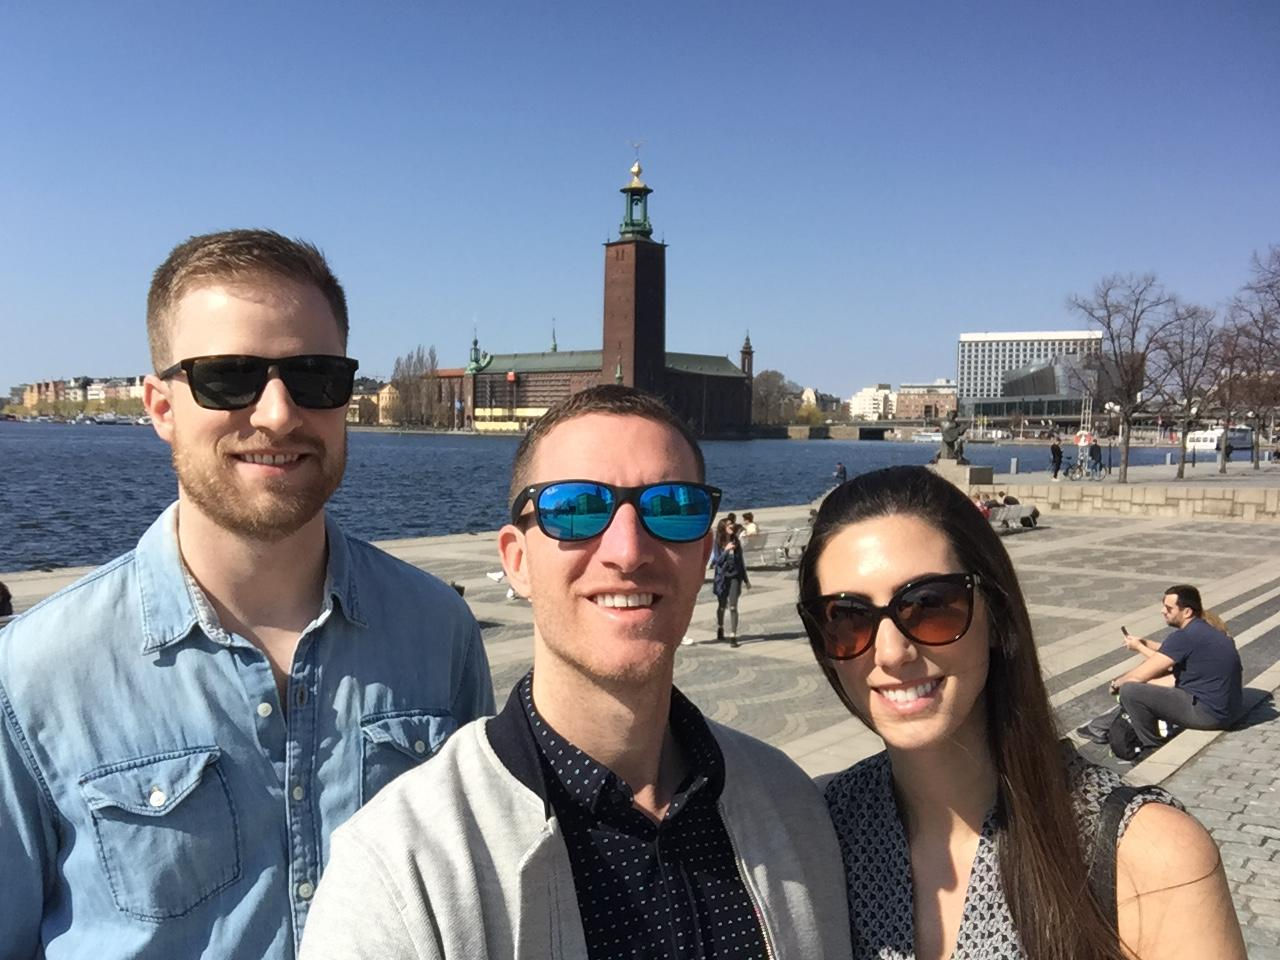 Stockholm, Sweden with cousin Nicky